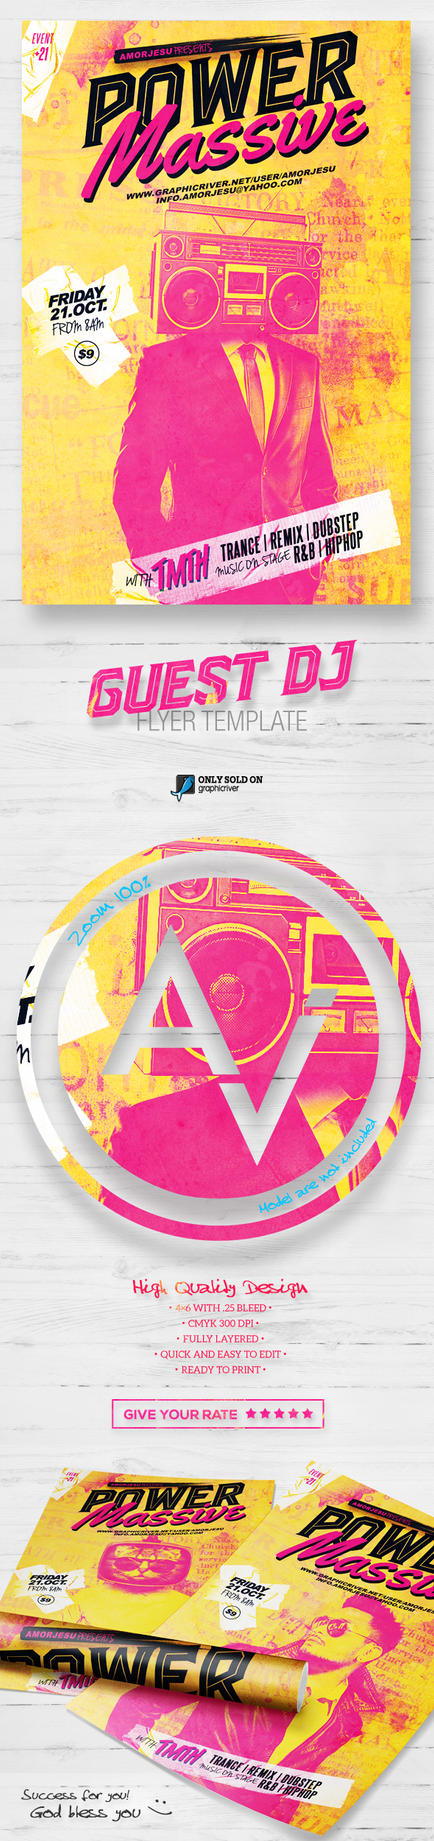 Guest DJ Flyer Template V4 by amorjesu